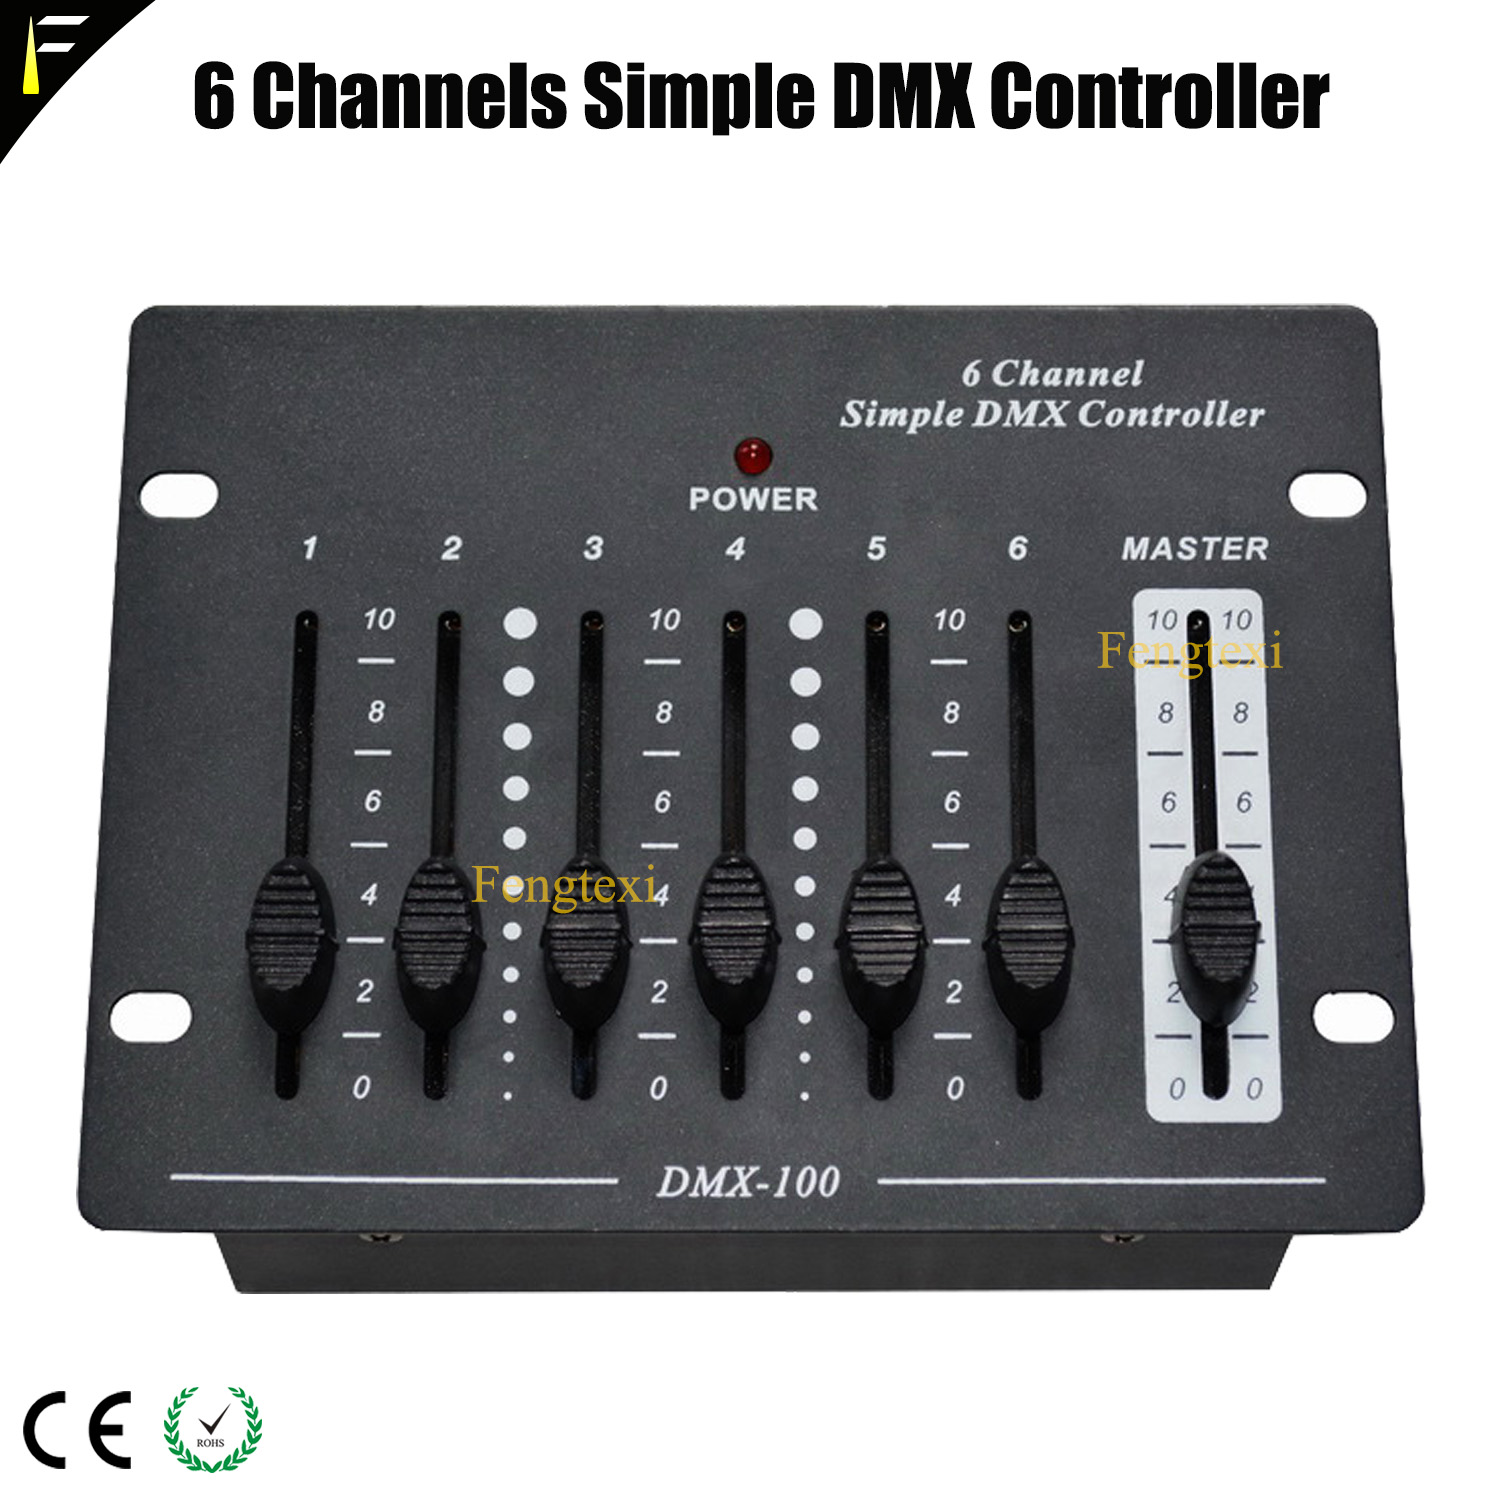 Mini 6 Channels Simple DMX Controller